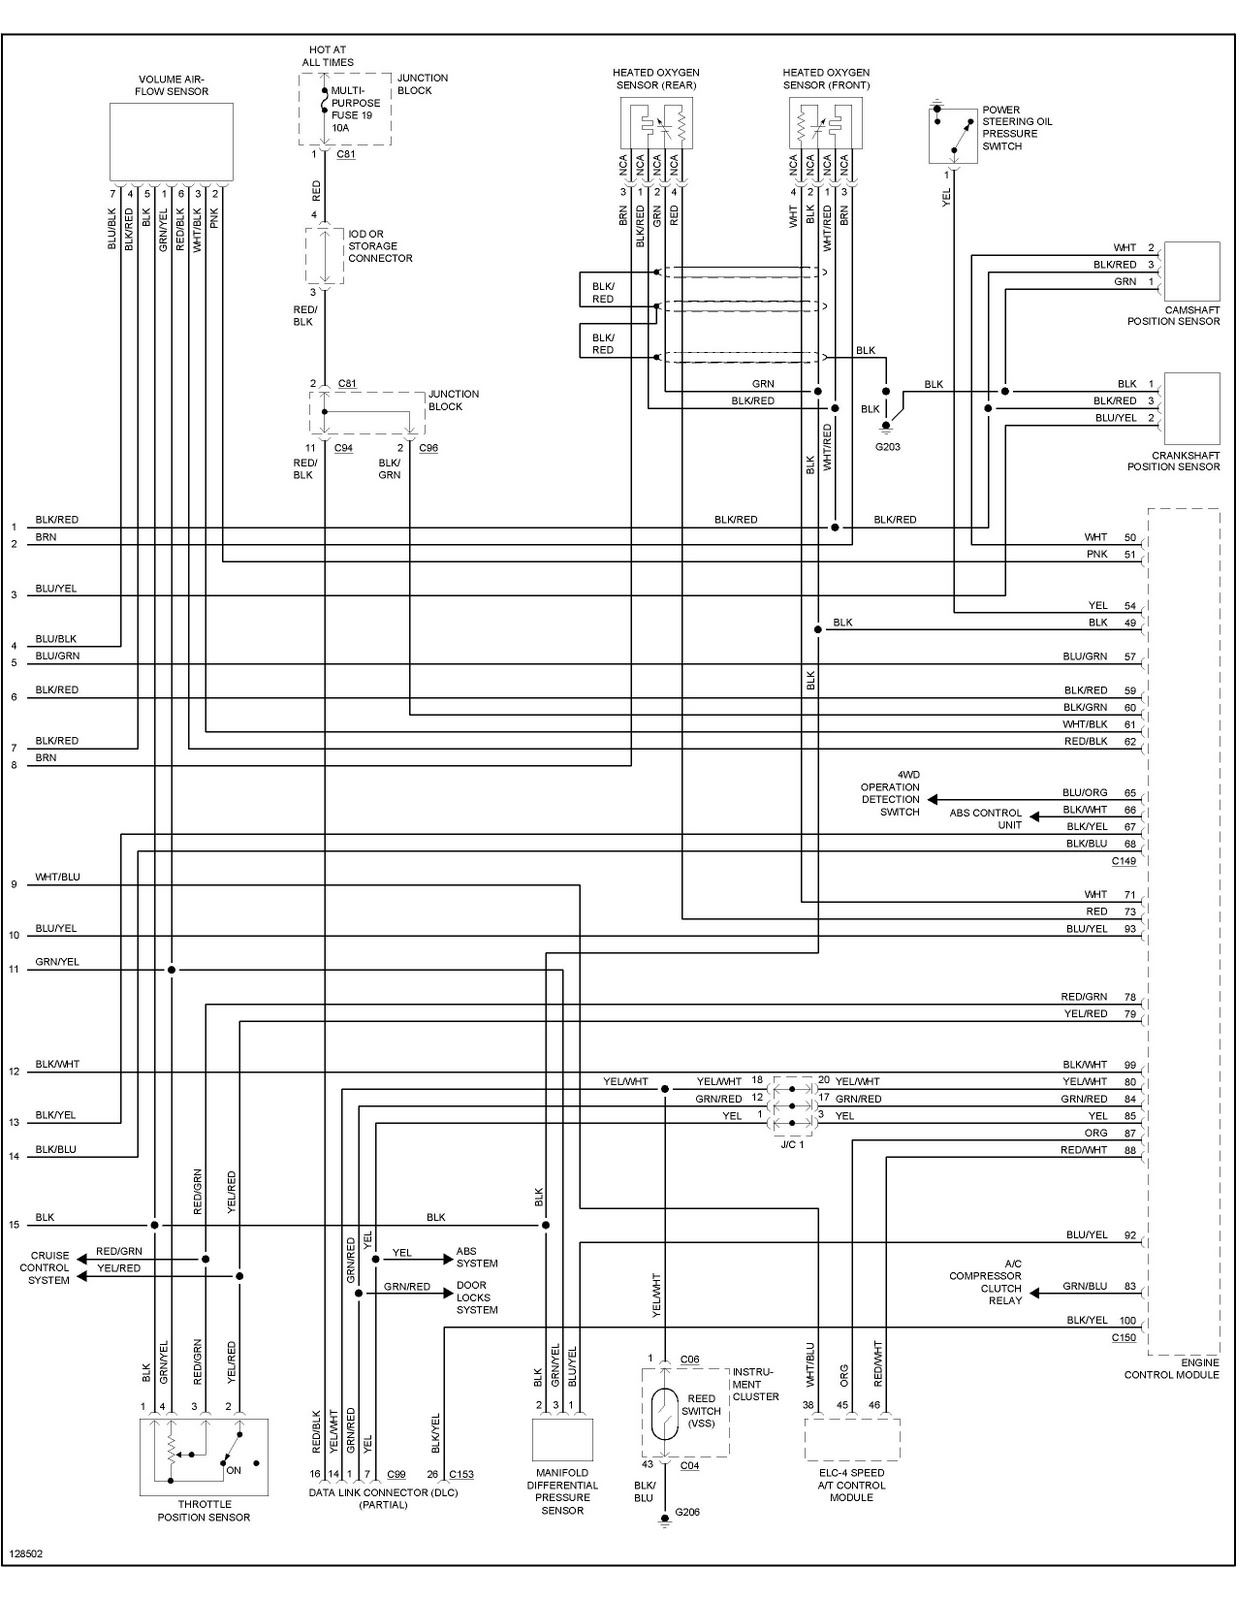 hight resolution of wiring diagram for 2002 mitsubishi montero 1998 mitsubishi 2002 mitsubishi eclipse wiring diagram 2002 mitsubishi eclipse wiring diagram